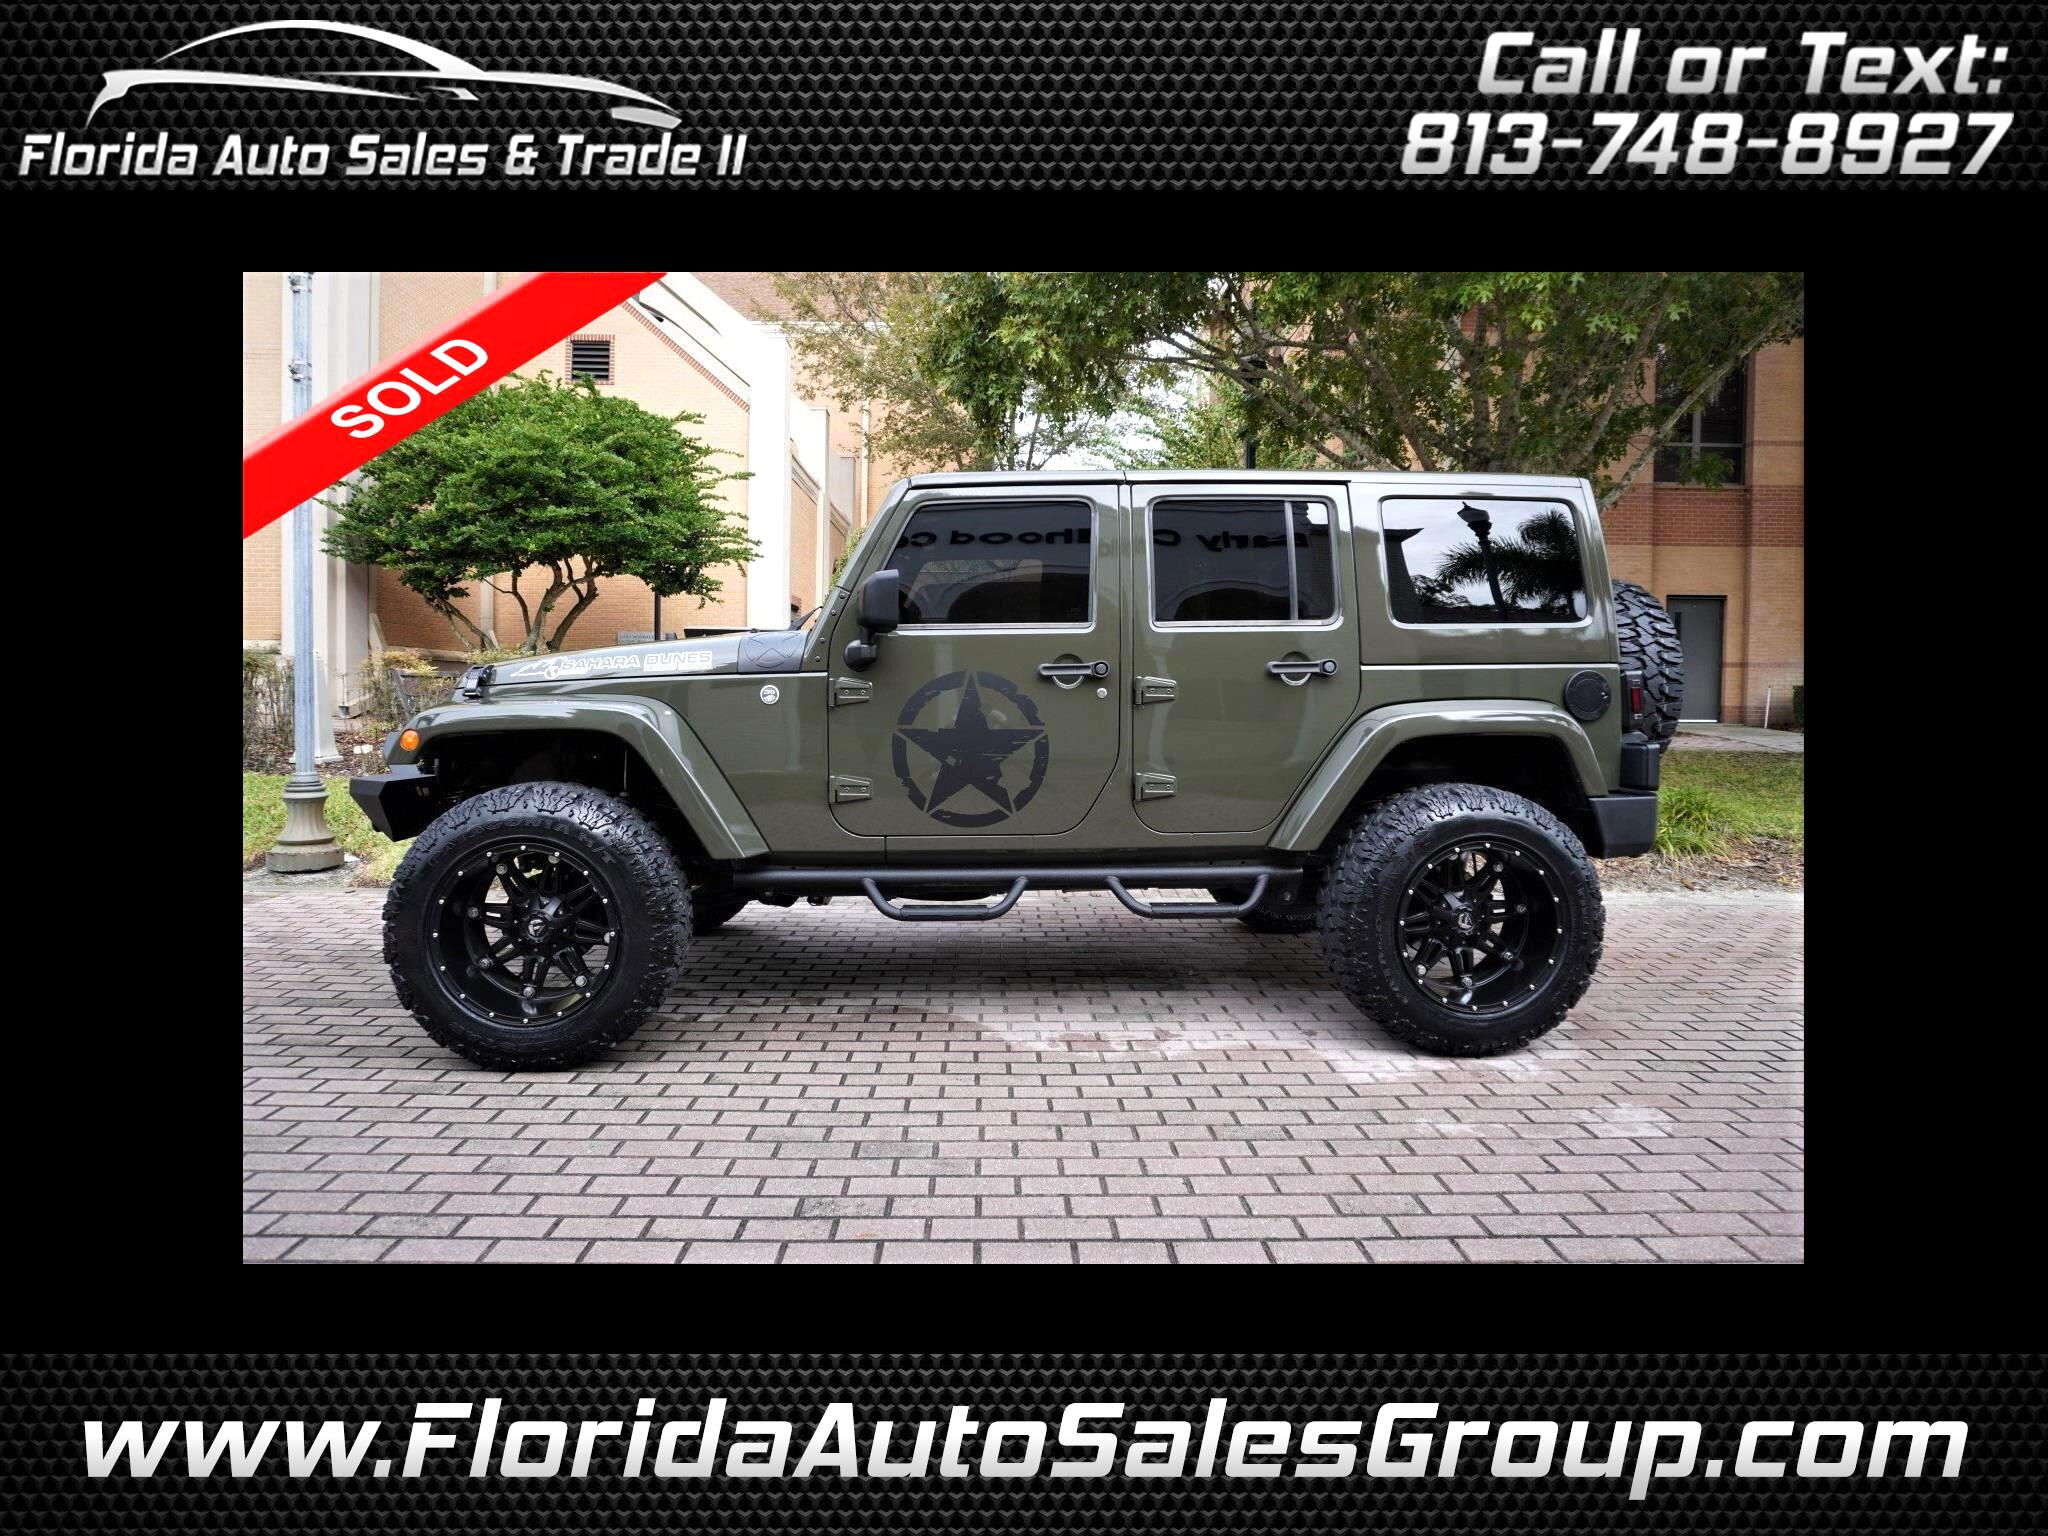 Jeep Wrangler Unlimited Sahara 4x4 2016